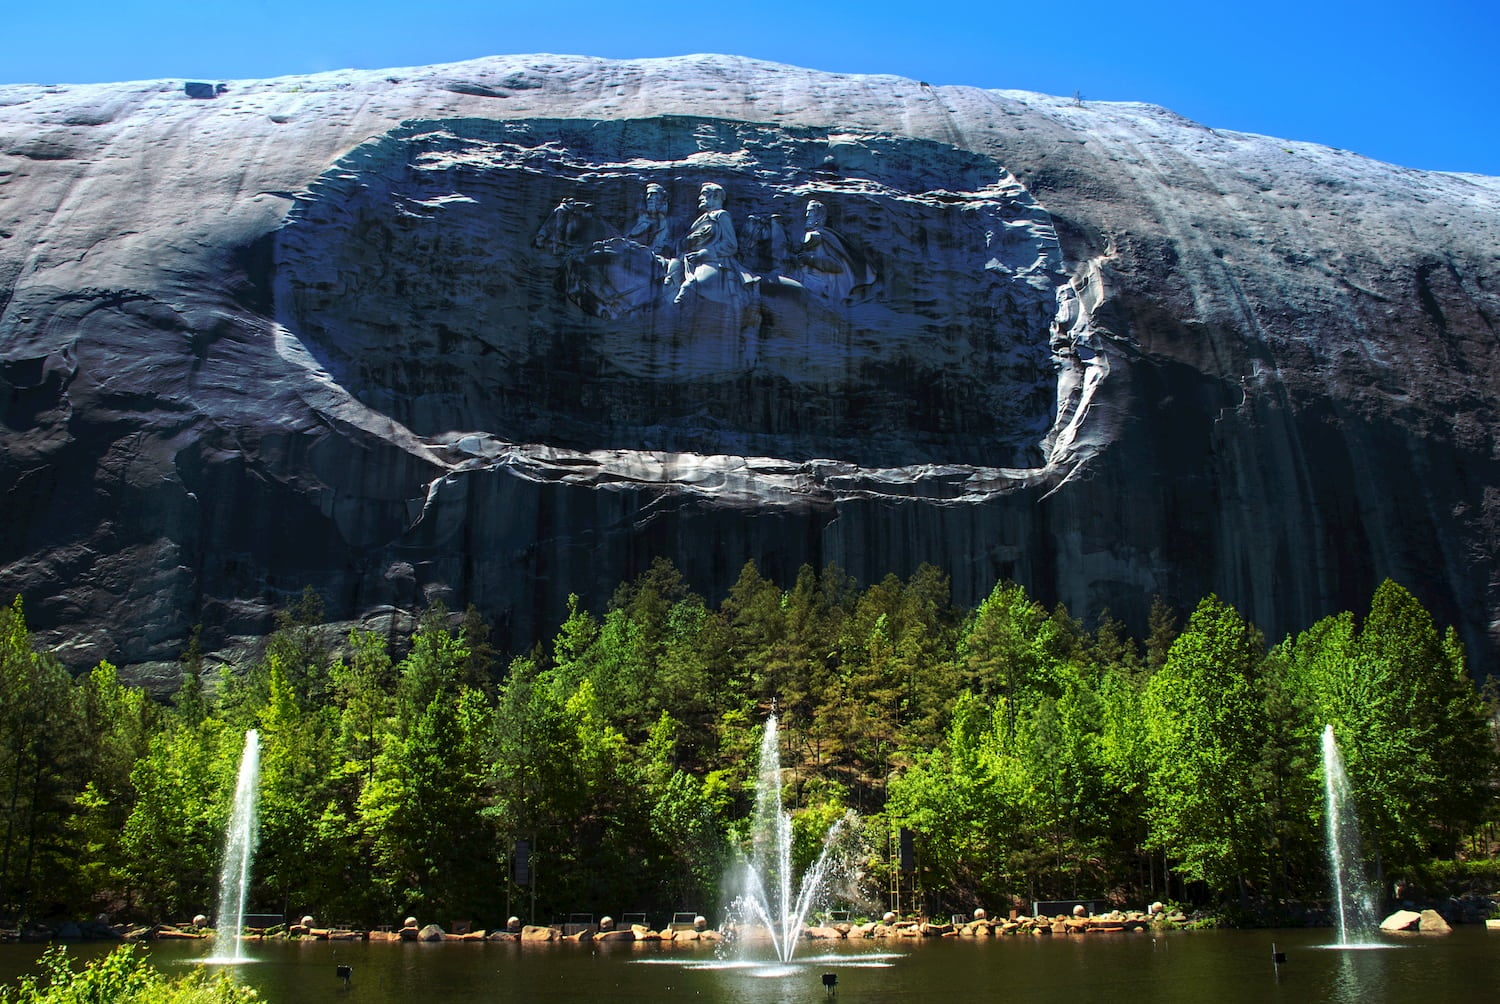 stone mountain with fountains in foreground